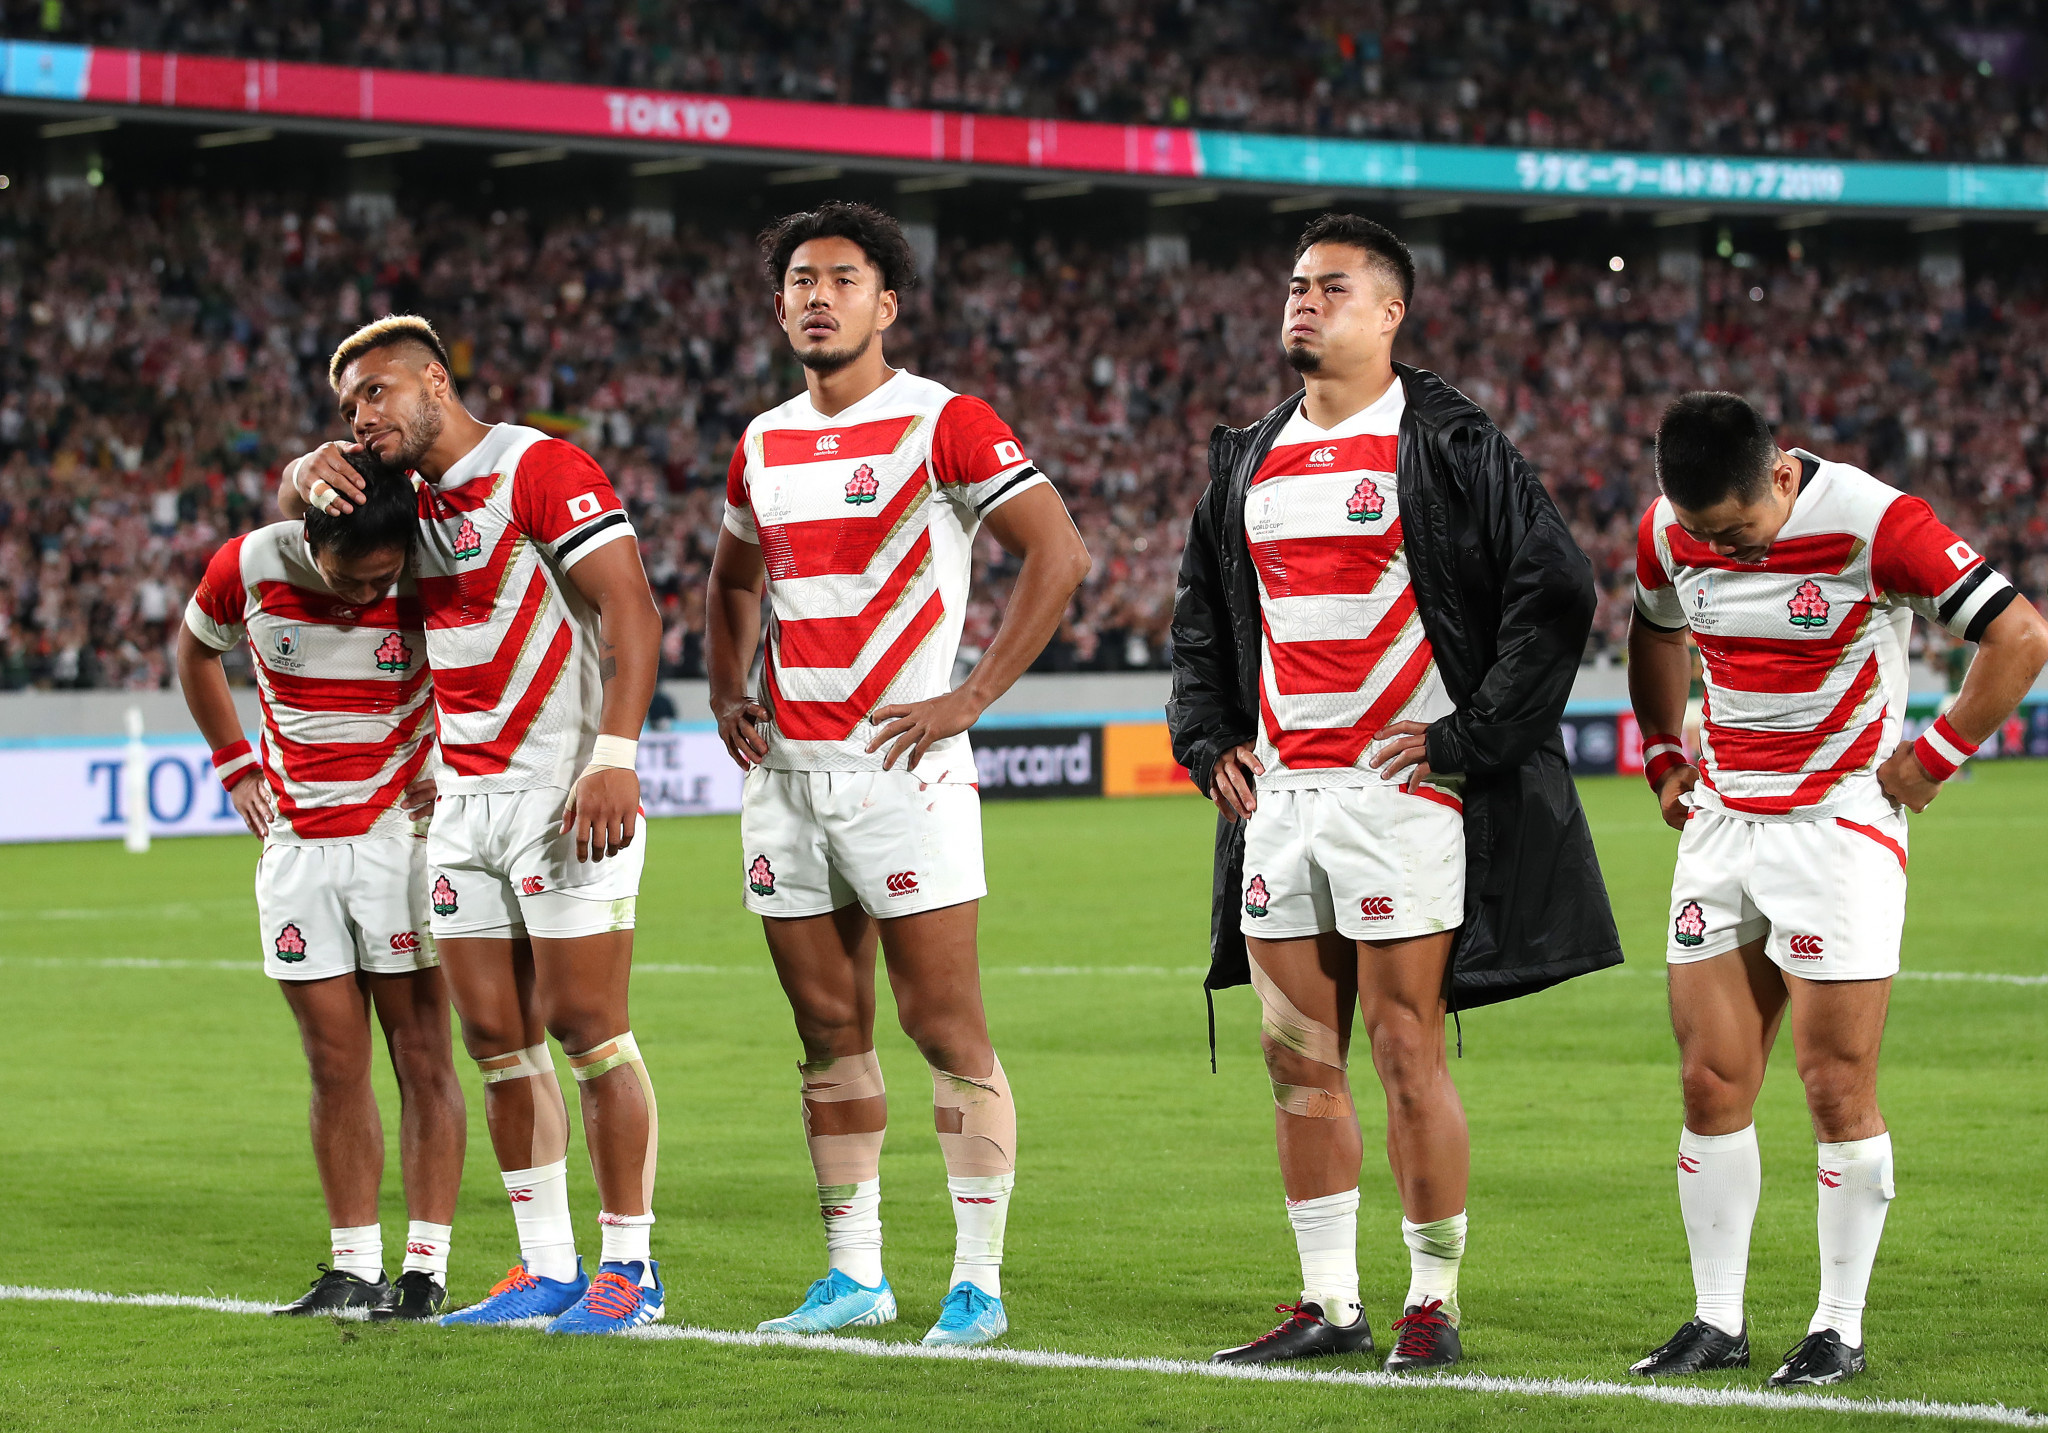 There were tears and tributes as Japan exited the Rugby World Cup ©Getty Images